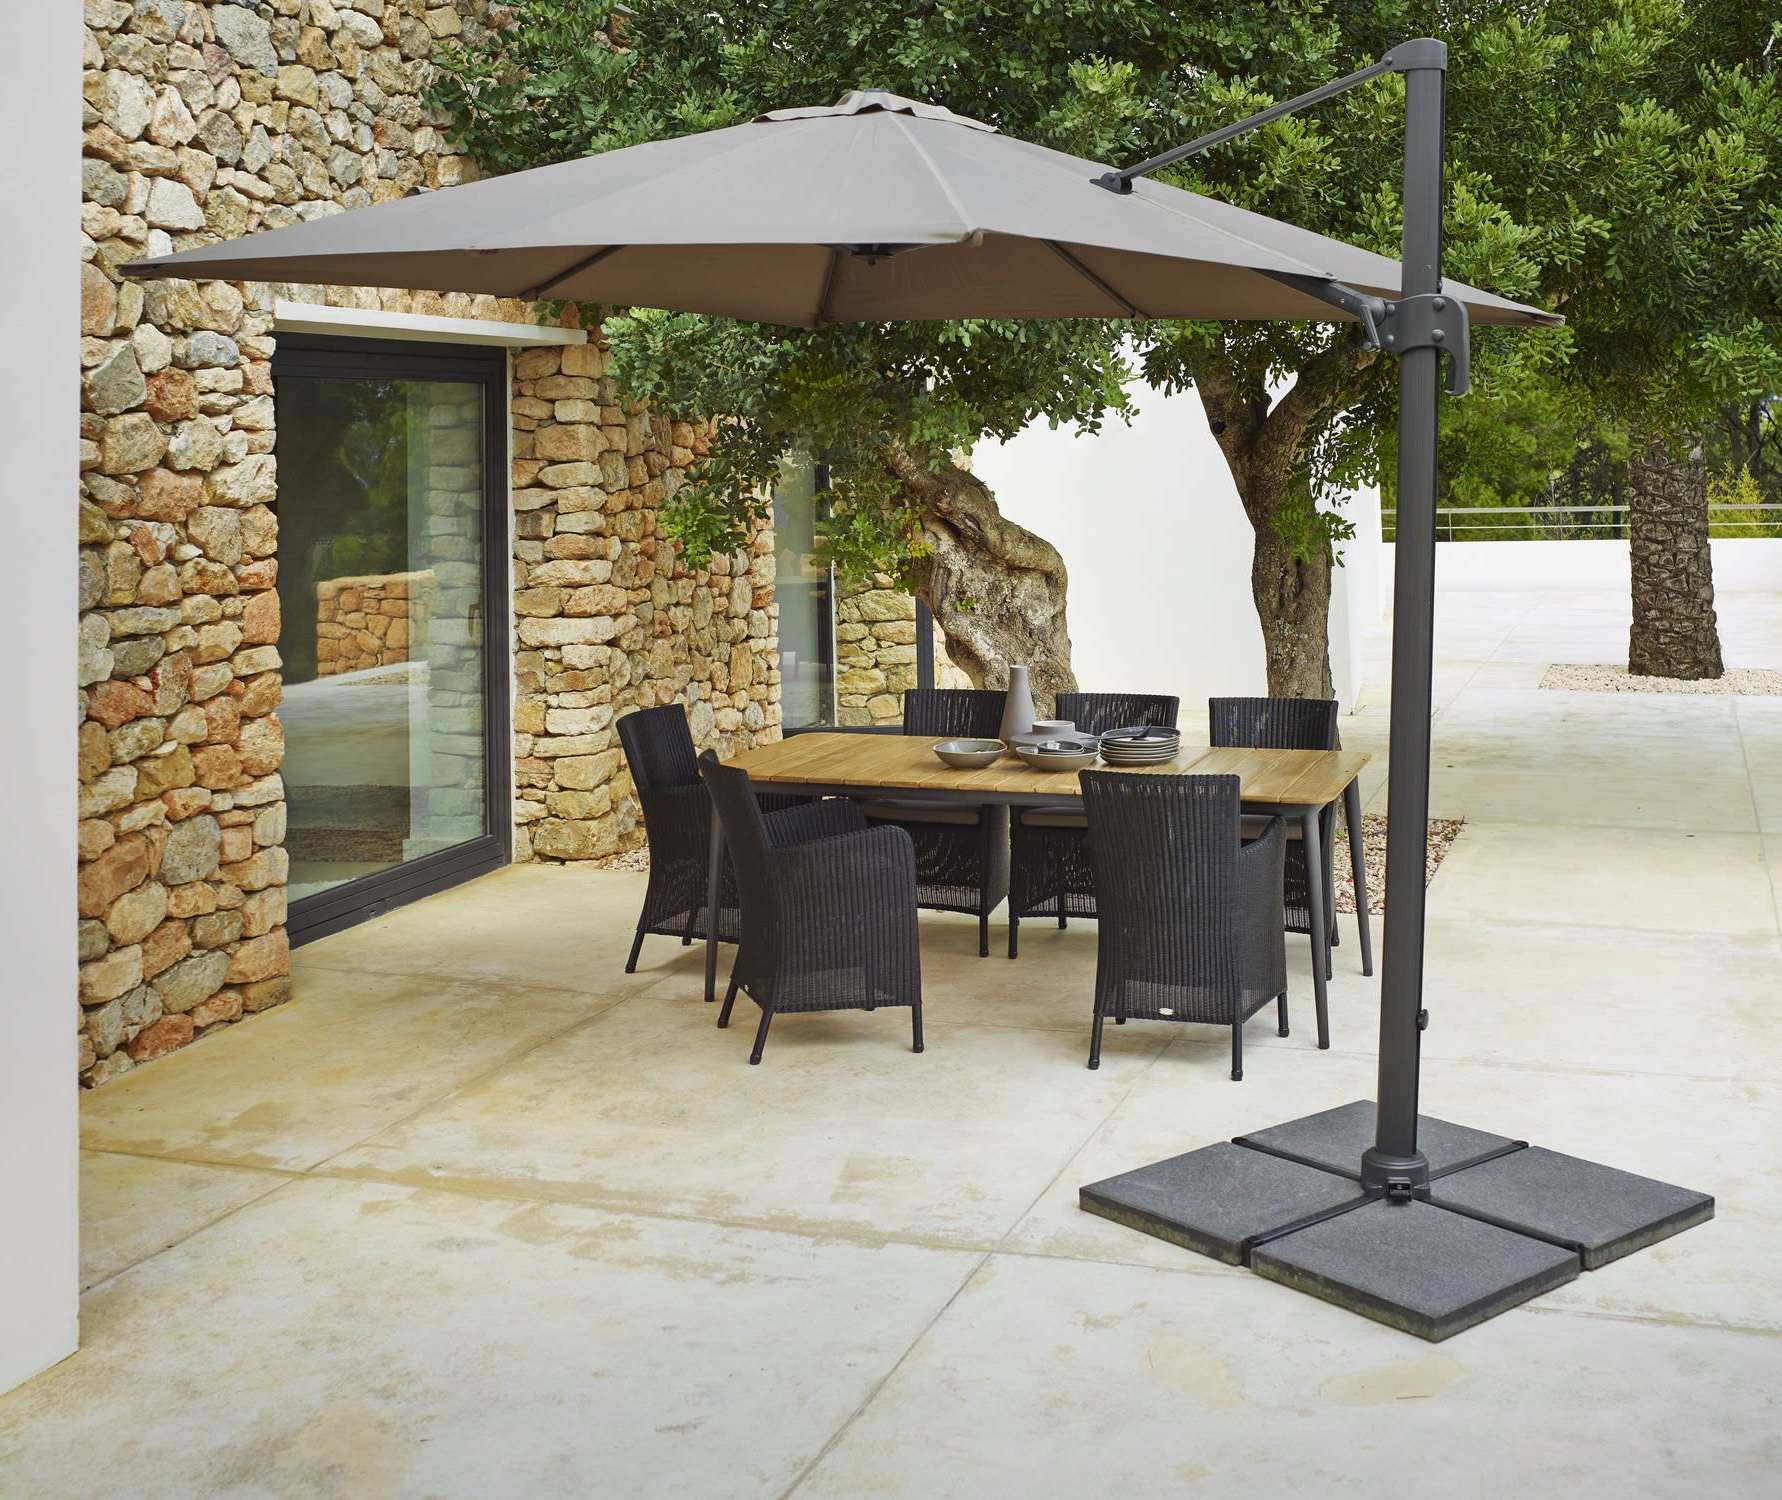 Most Recent Wardingham Square Cantilever Umbrellas Regarding Red Barrel Studio Wardingham 9.8' Square Cantilever Umbrella In 2019 (Gallery 9 of 20)